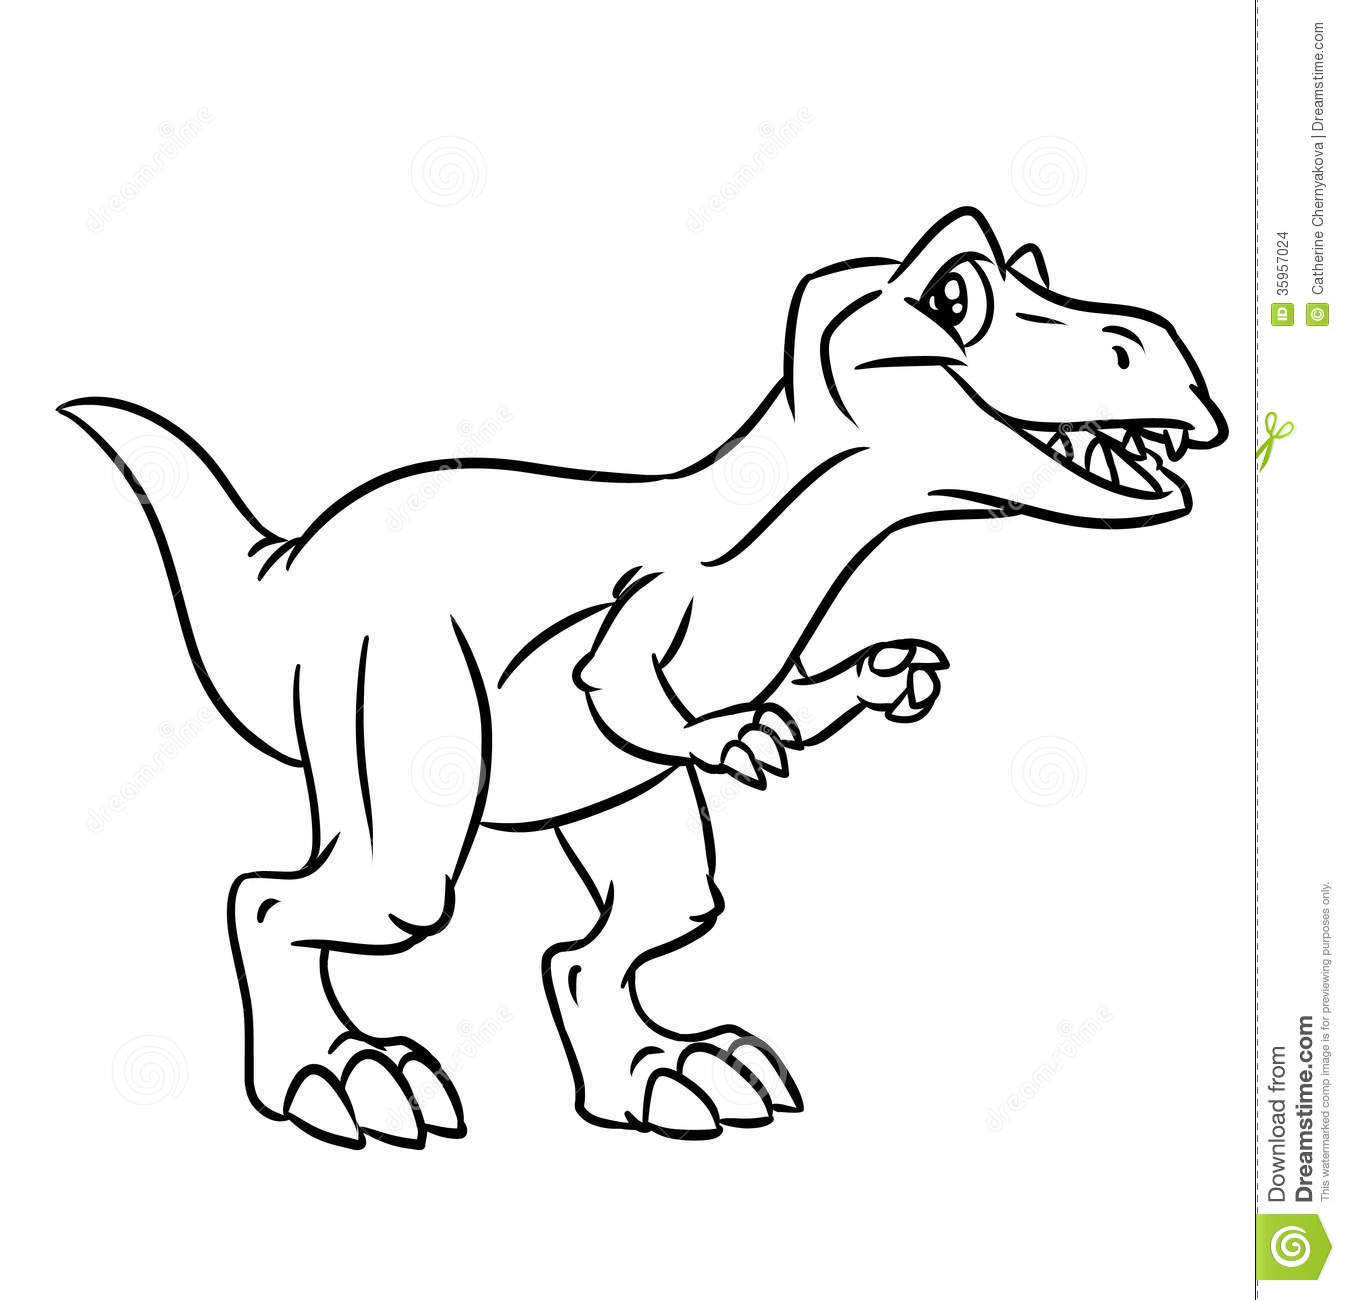 Image Result For T Rex Coloring Page Kids Drawing Of T